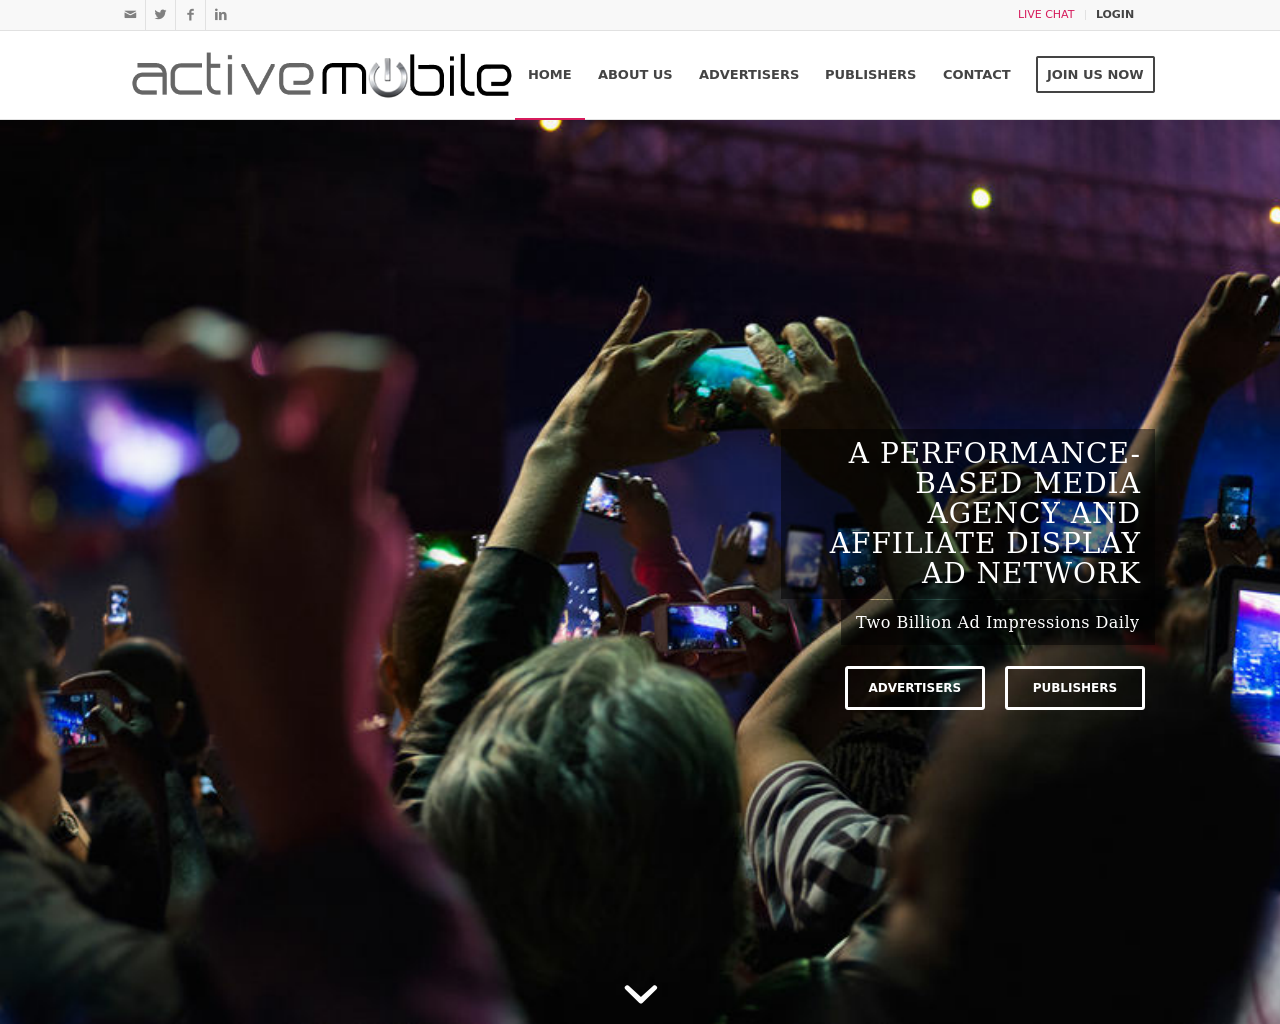 Active-Mobile-LLC-Advertising-Reviews-Pricing